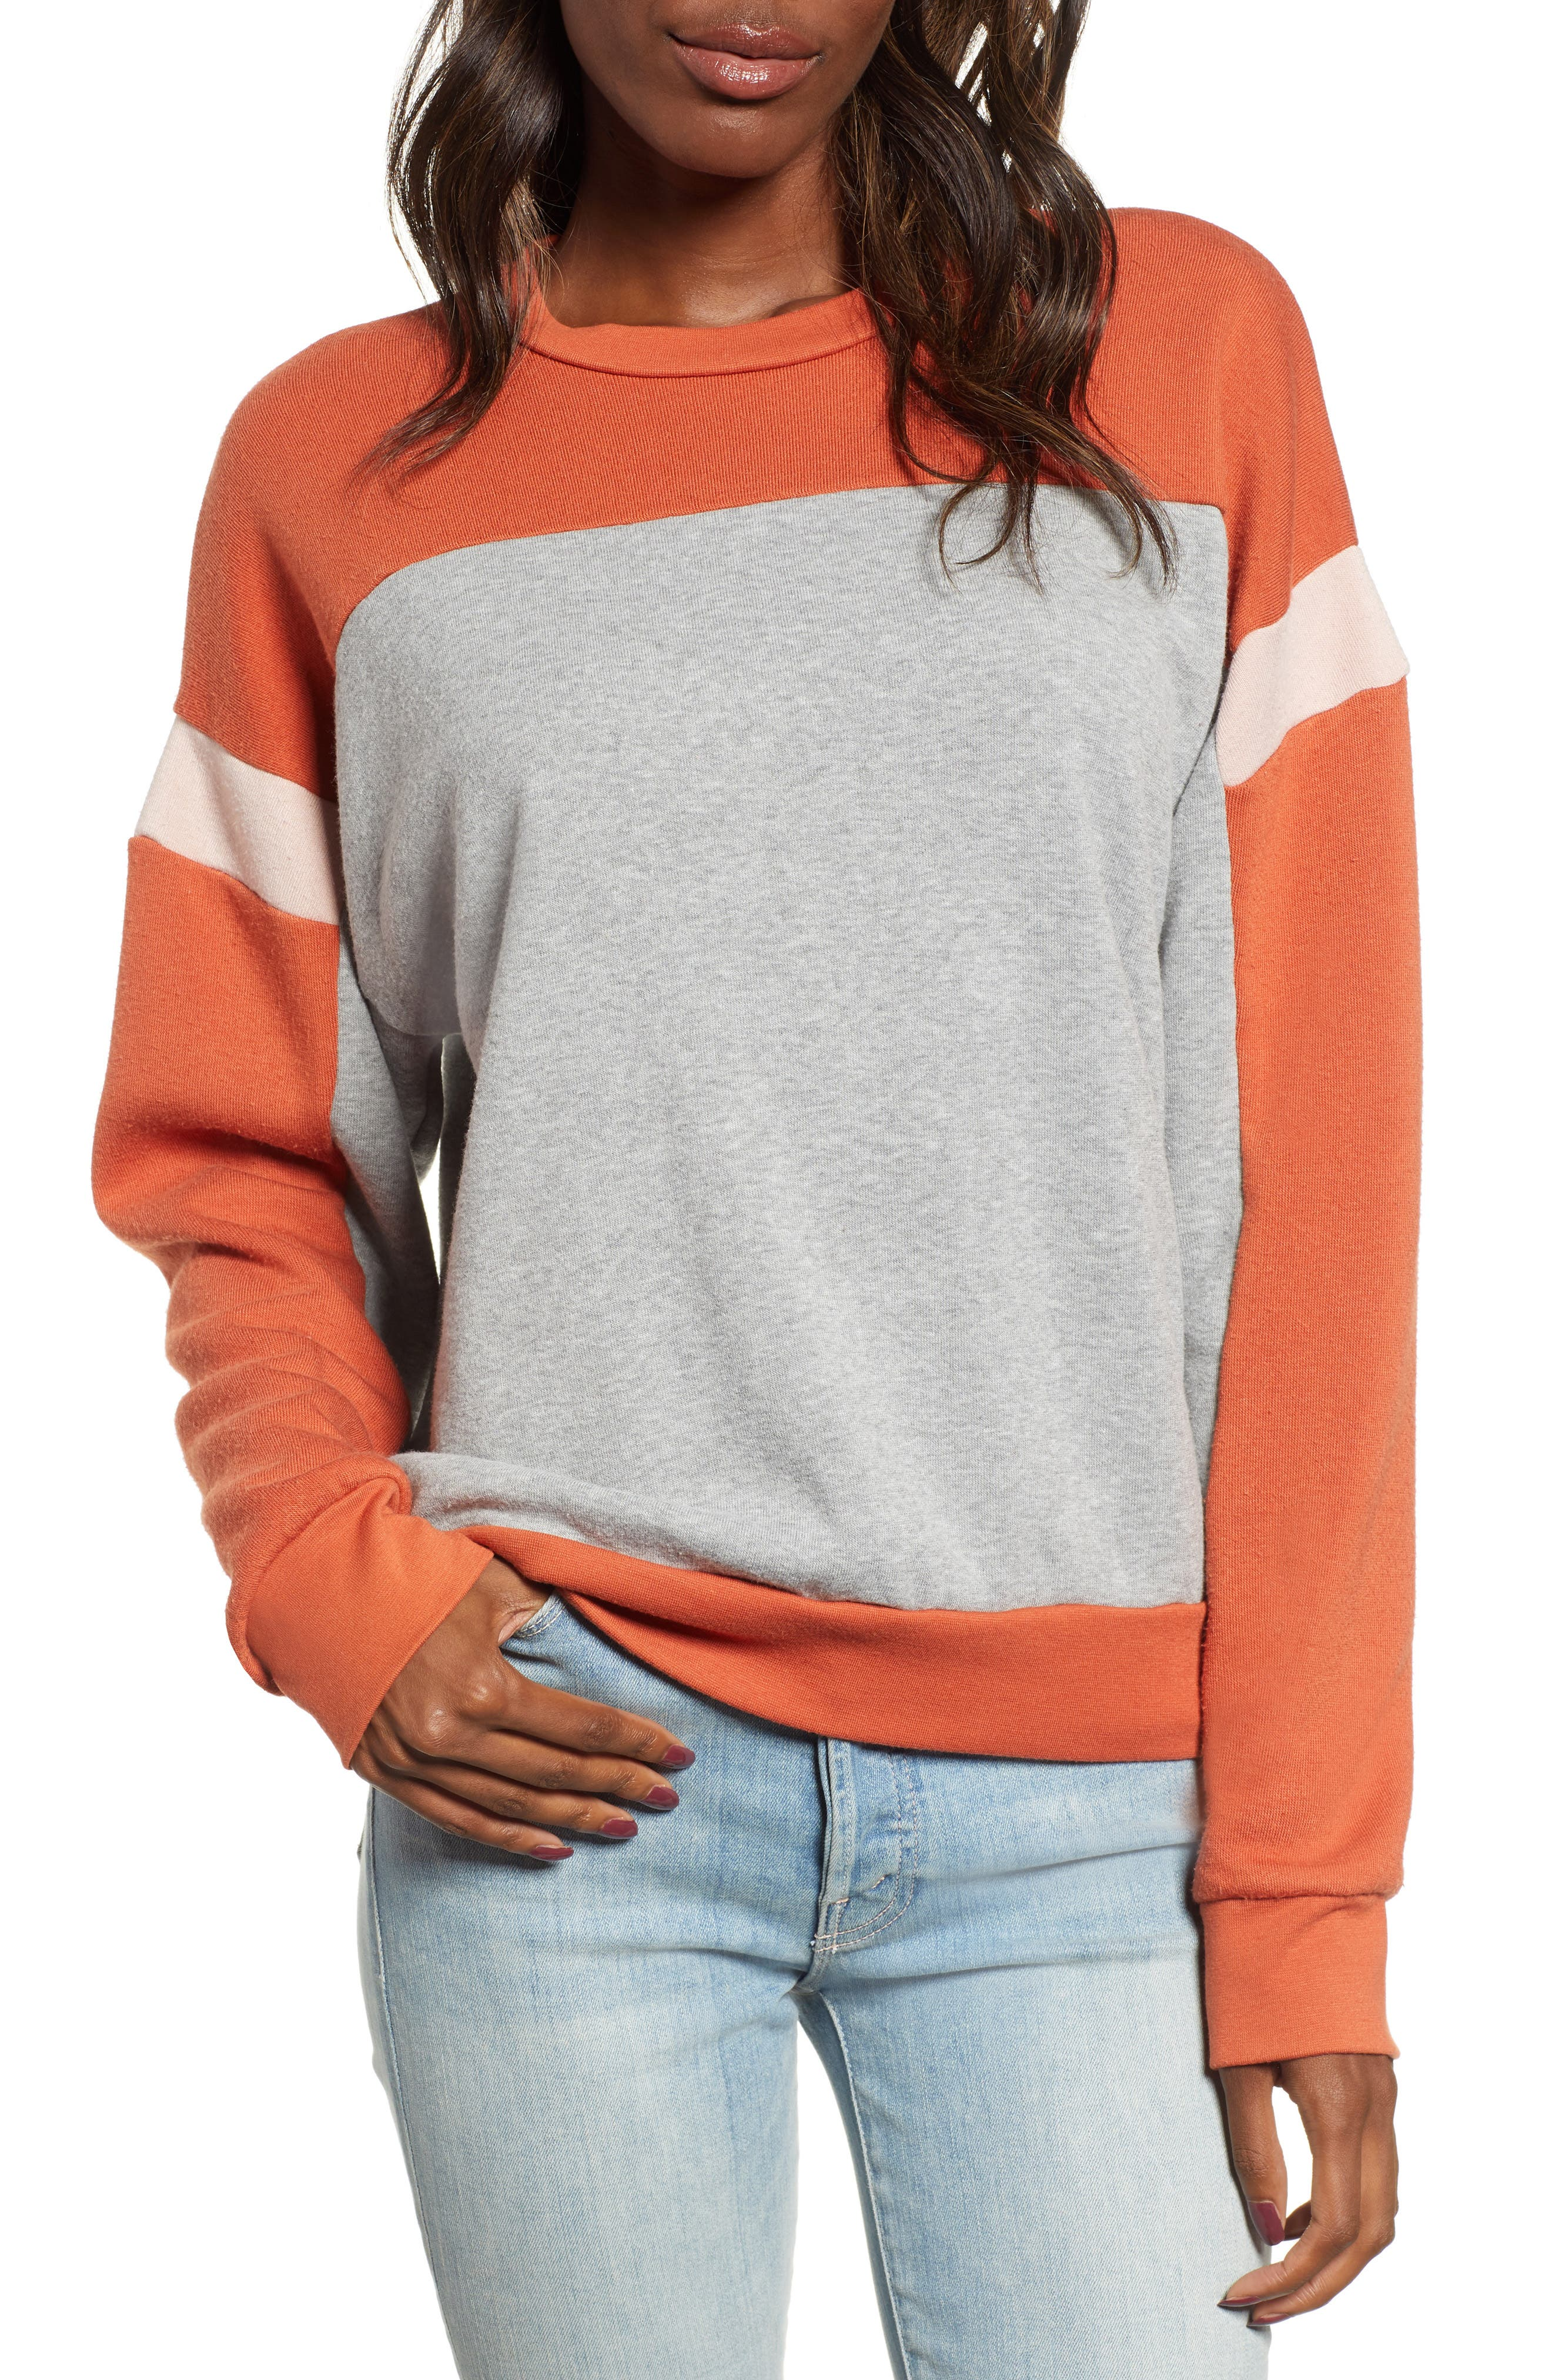 Rewind Colorblock Sweatshirt,                             Main thumbnail 1, color,                             HEATHER GREY/ SERRANO